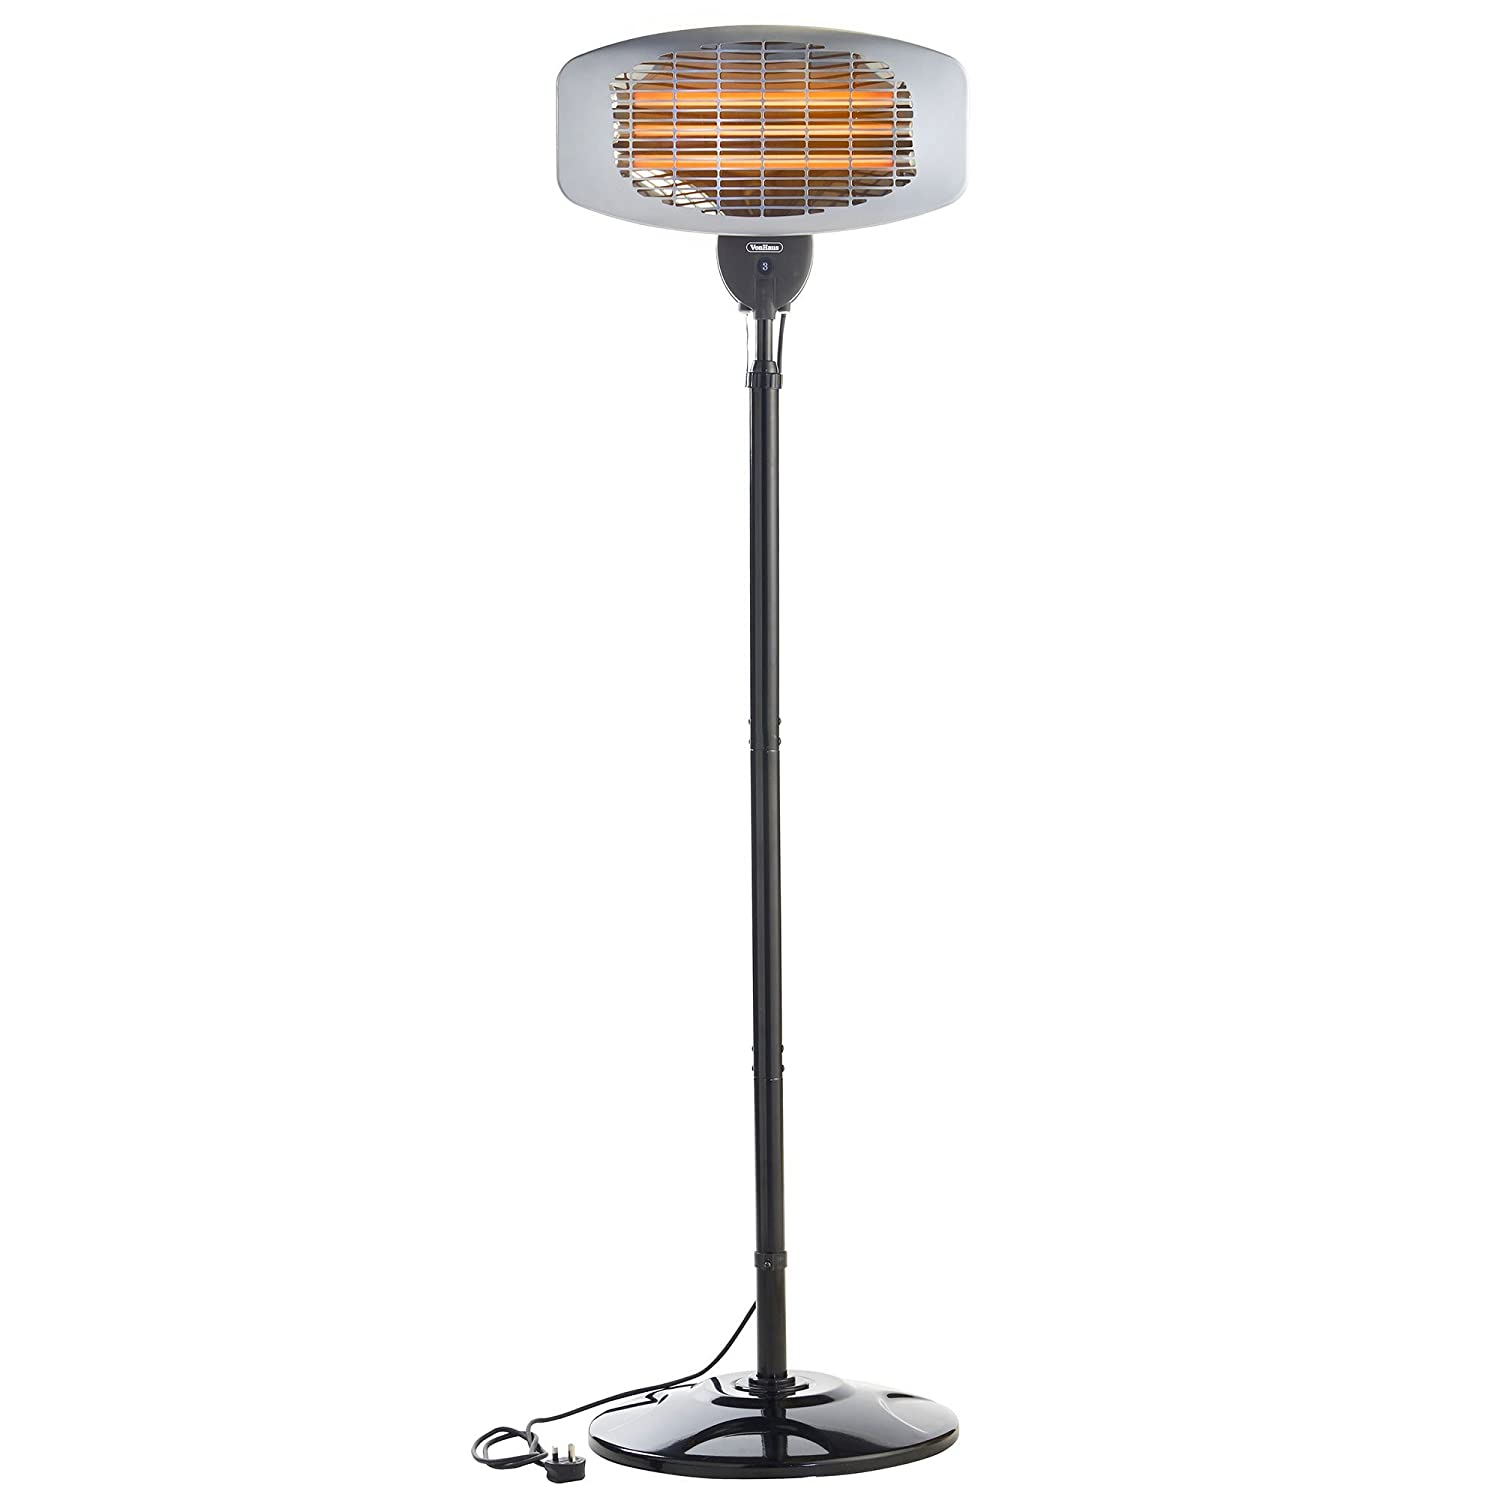 VonHaus Electric Patio Heater 2000W Free Standing - Quartz Heating,  Outdoor, Garden, Weatherproof Safety Rated to IPX4 - Height Adjustable with  3 Heat